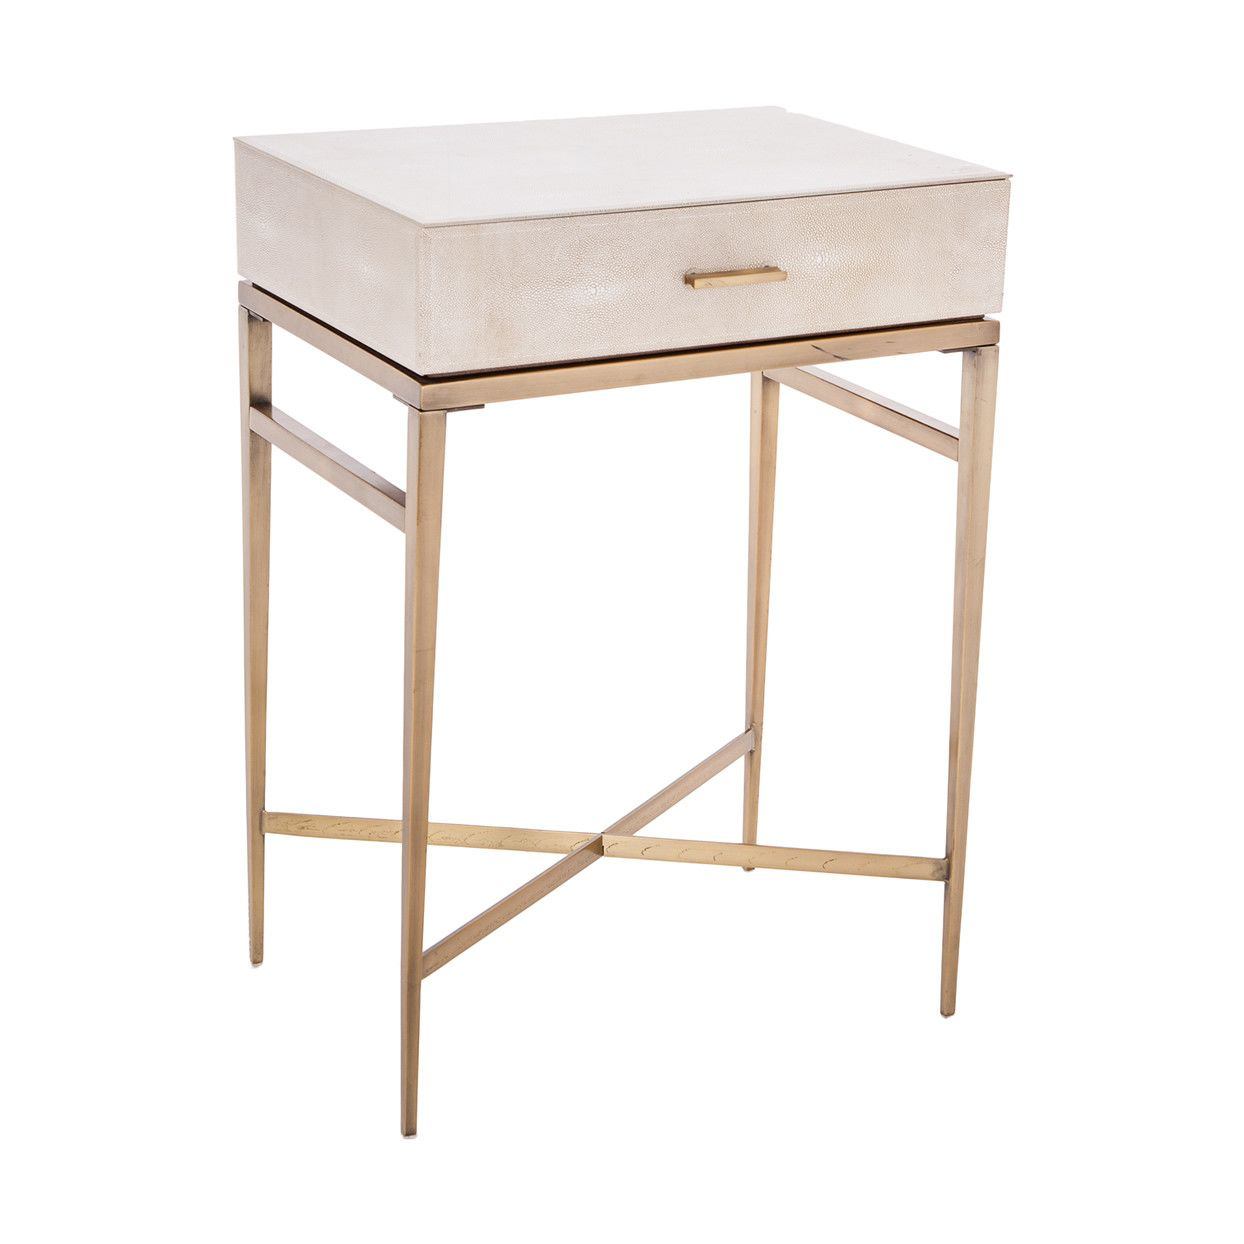 Lucile taupe shagreen gold side table bedrooms brass side table and master bedroom - Side table for bedroom ...